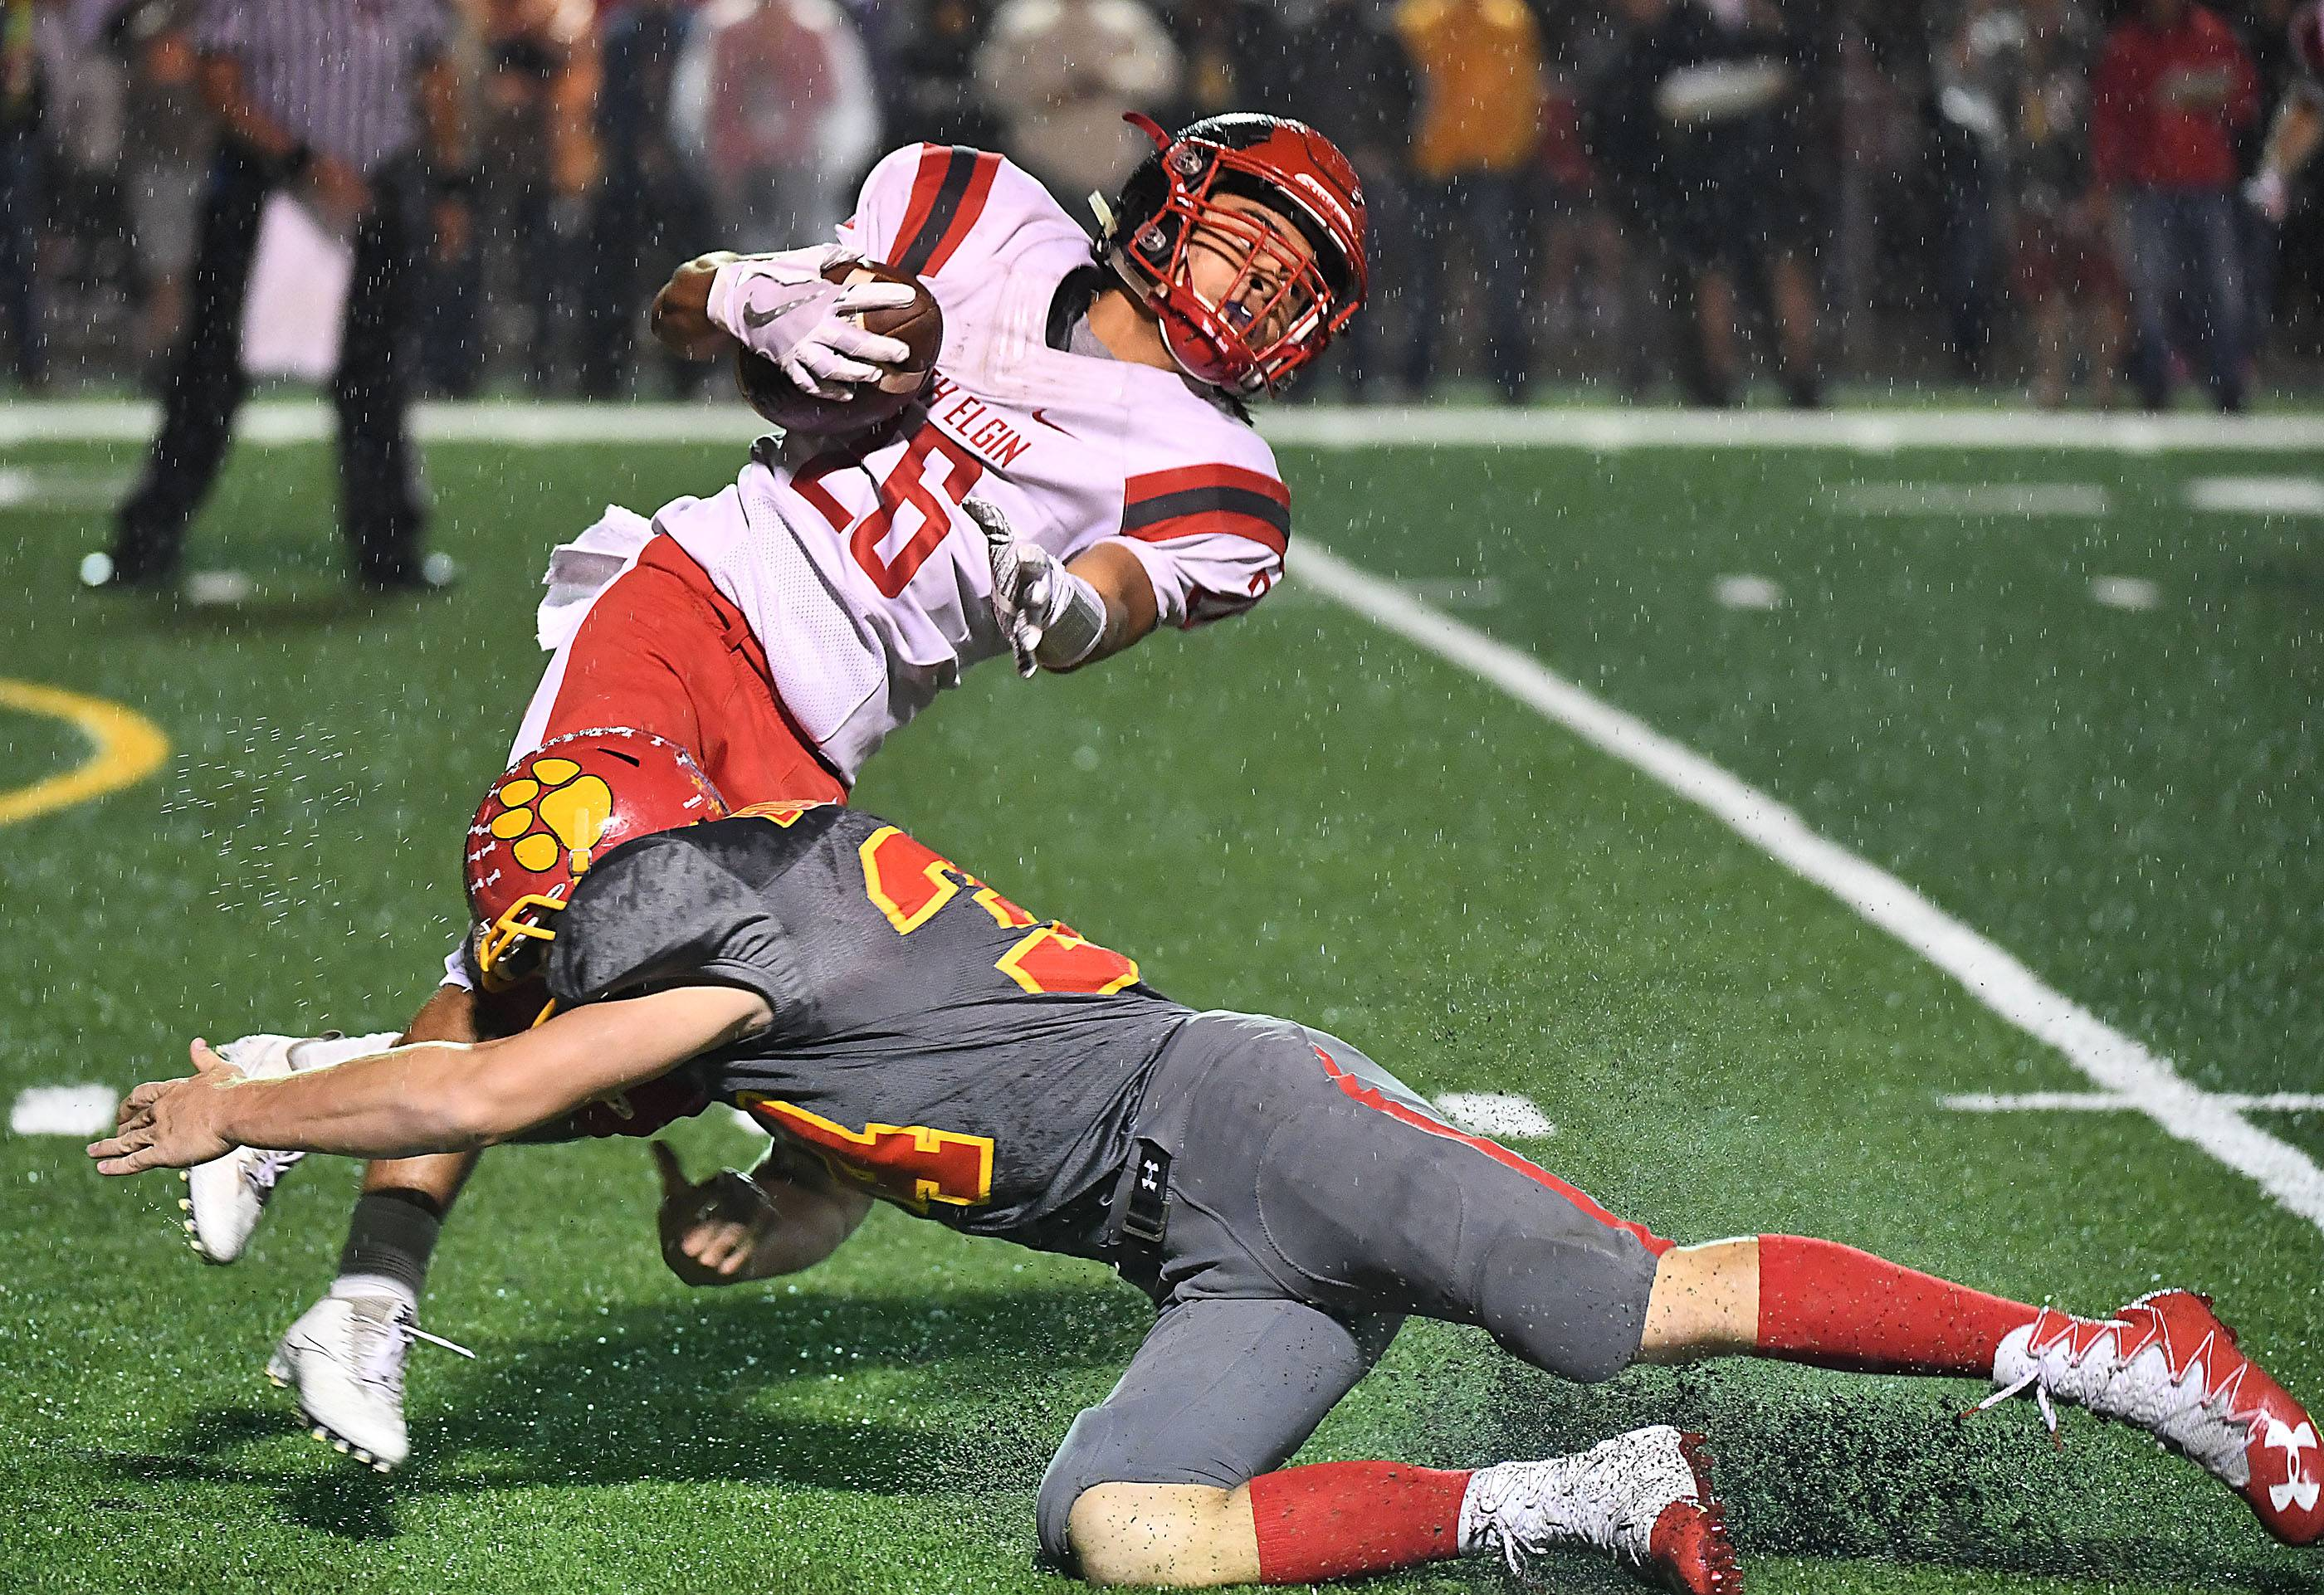 Batavia tops South Elgin in battle of unbeatens